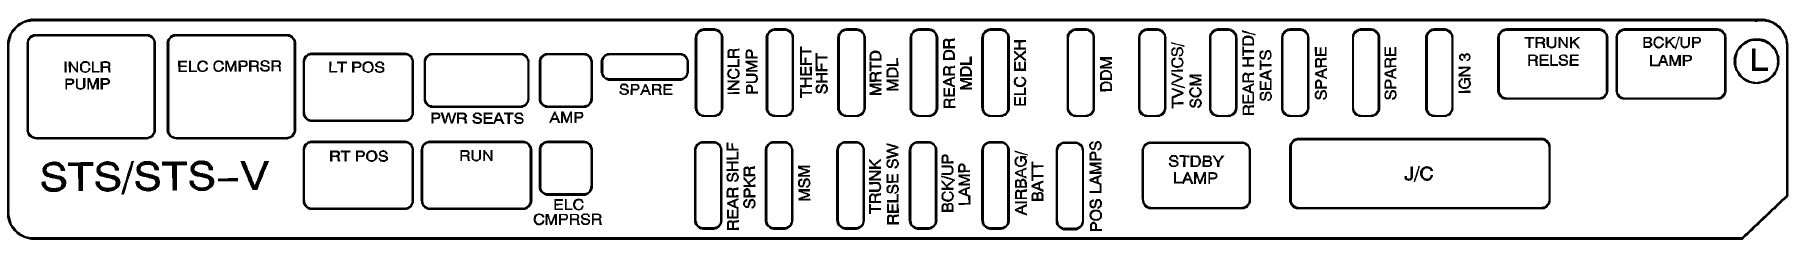 Cadillac STS mk2 fuse box rear compartment drivers side 2008 cadillac sts mk2 (second generation; 2008 2009) fuse box 2006 cadillac sts fuse box diagram at gsmx.co